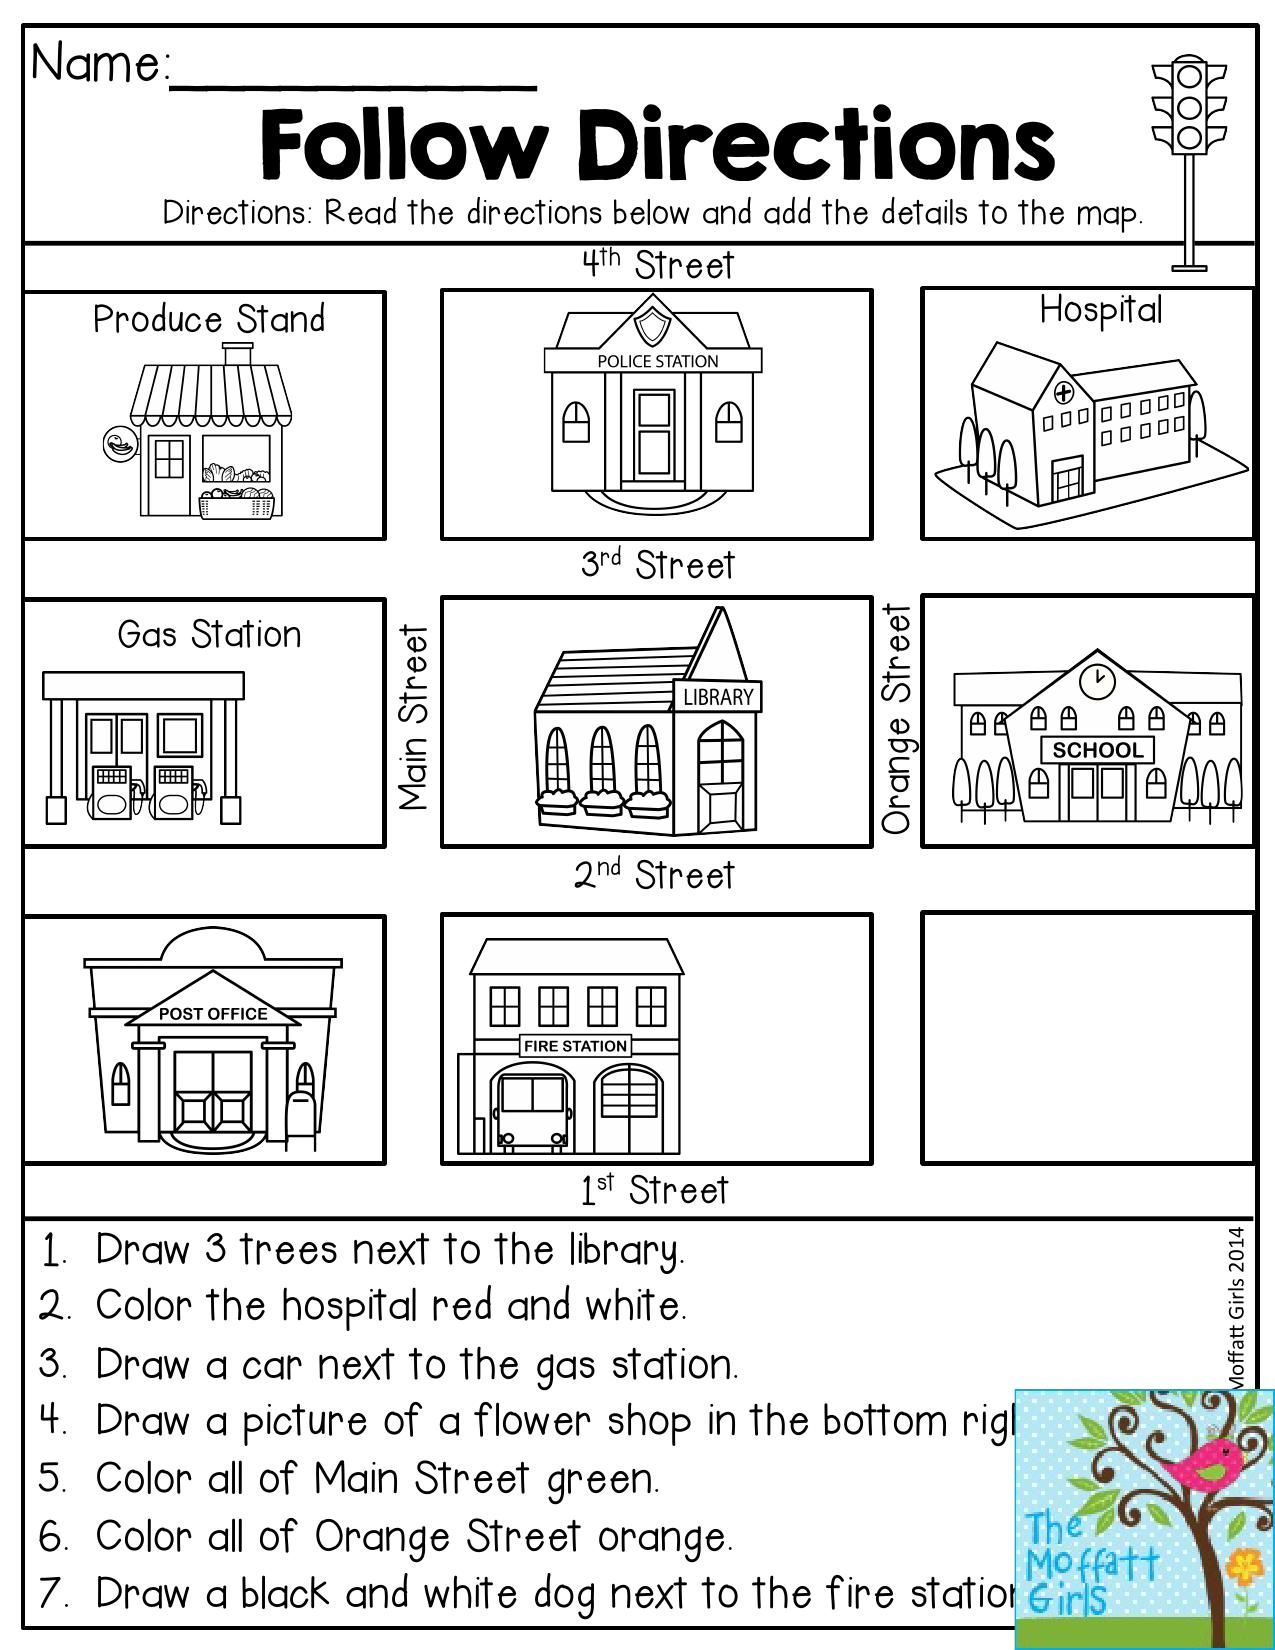 Language Worksheets Free Halloween Math Worksheets For 4Th